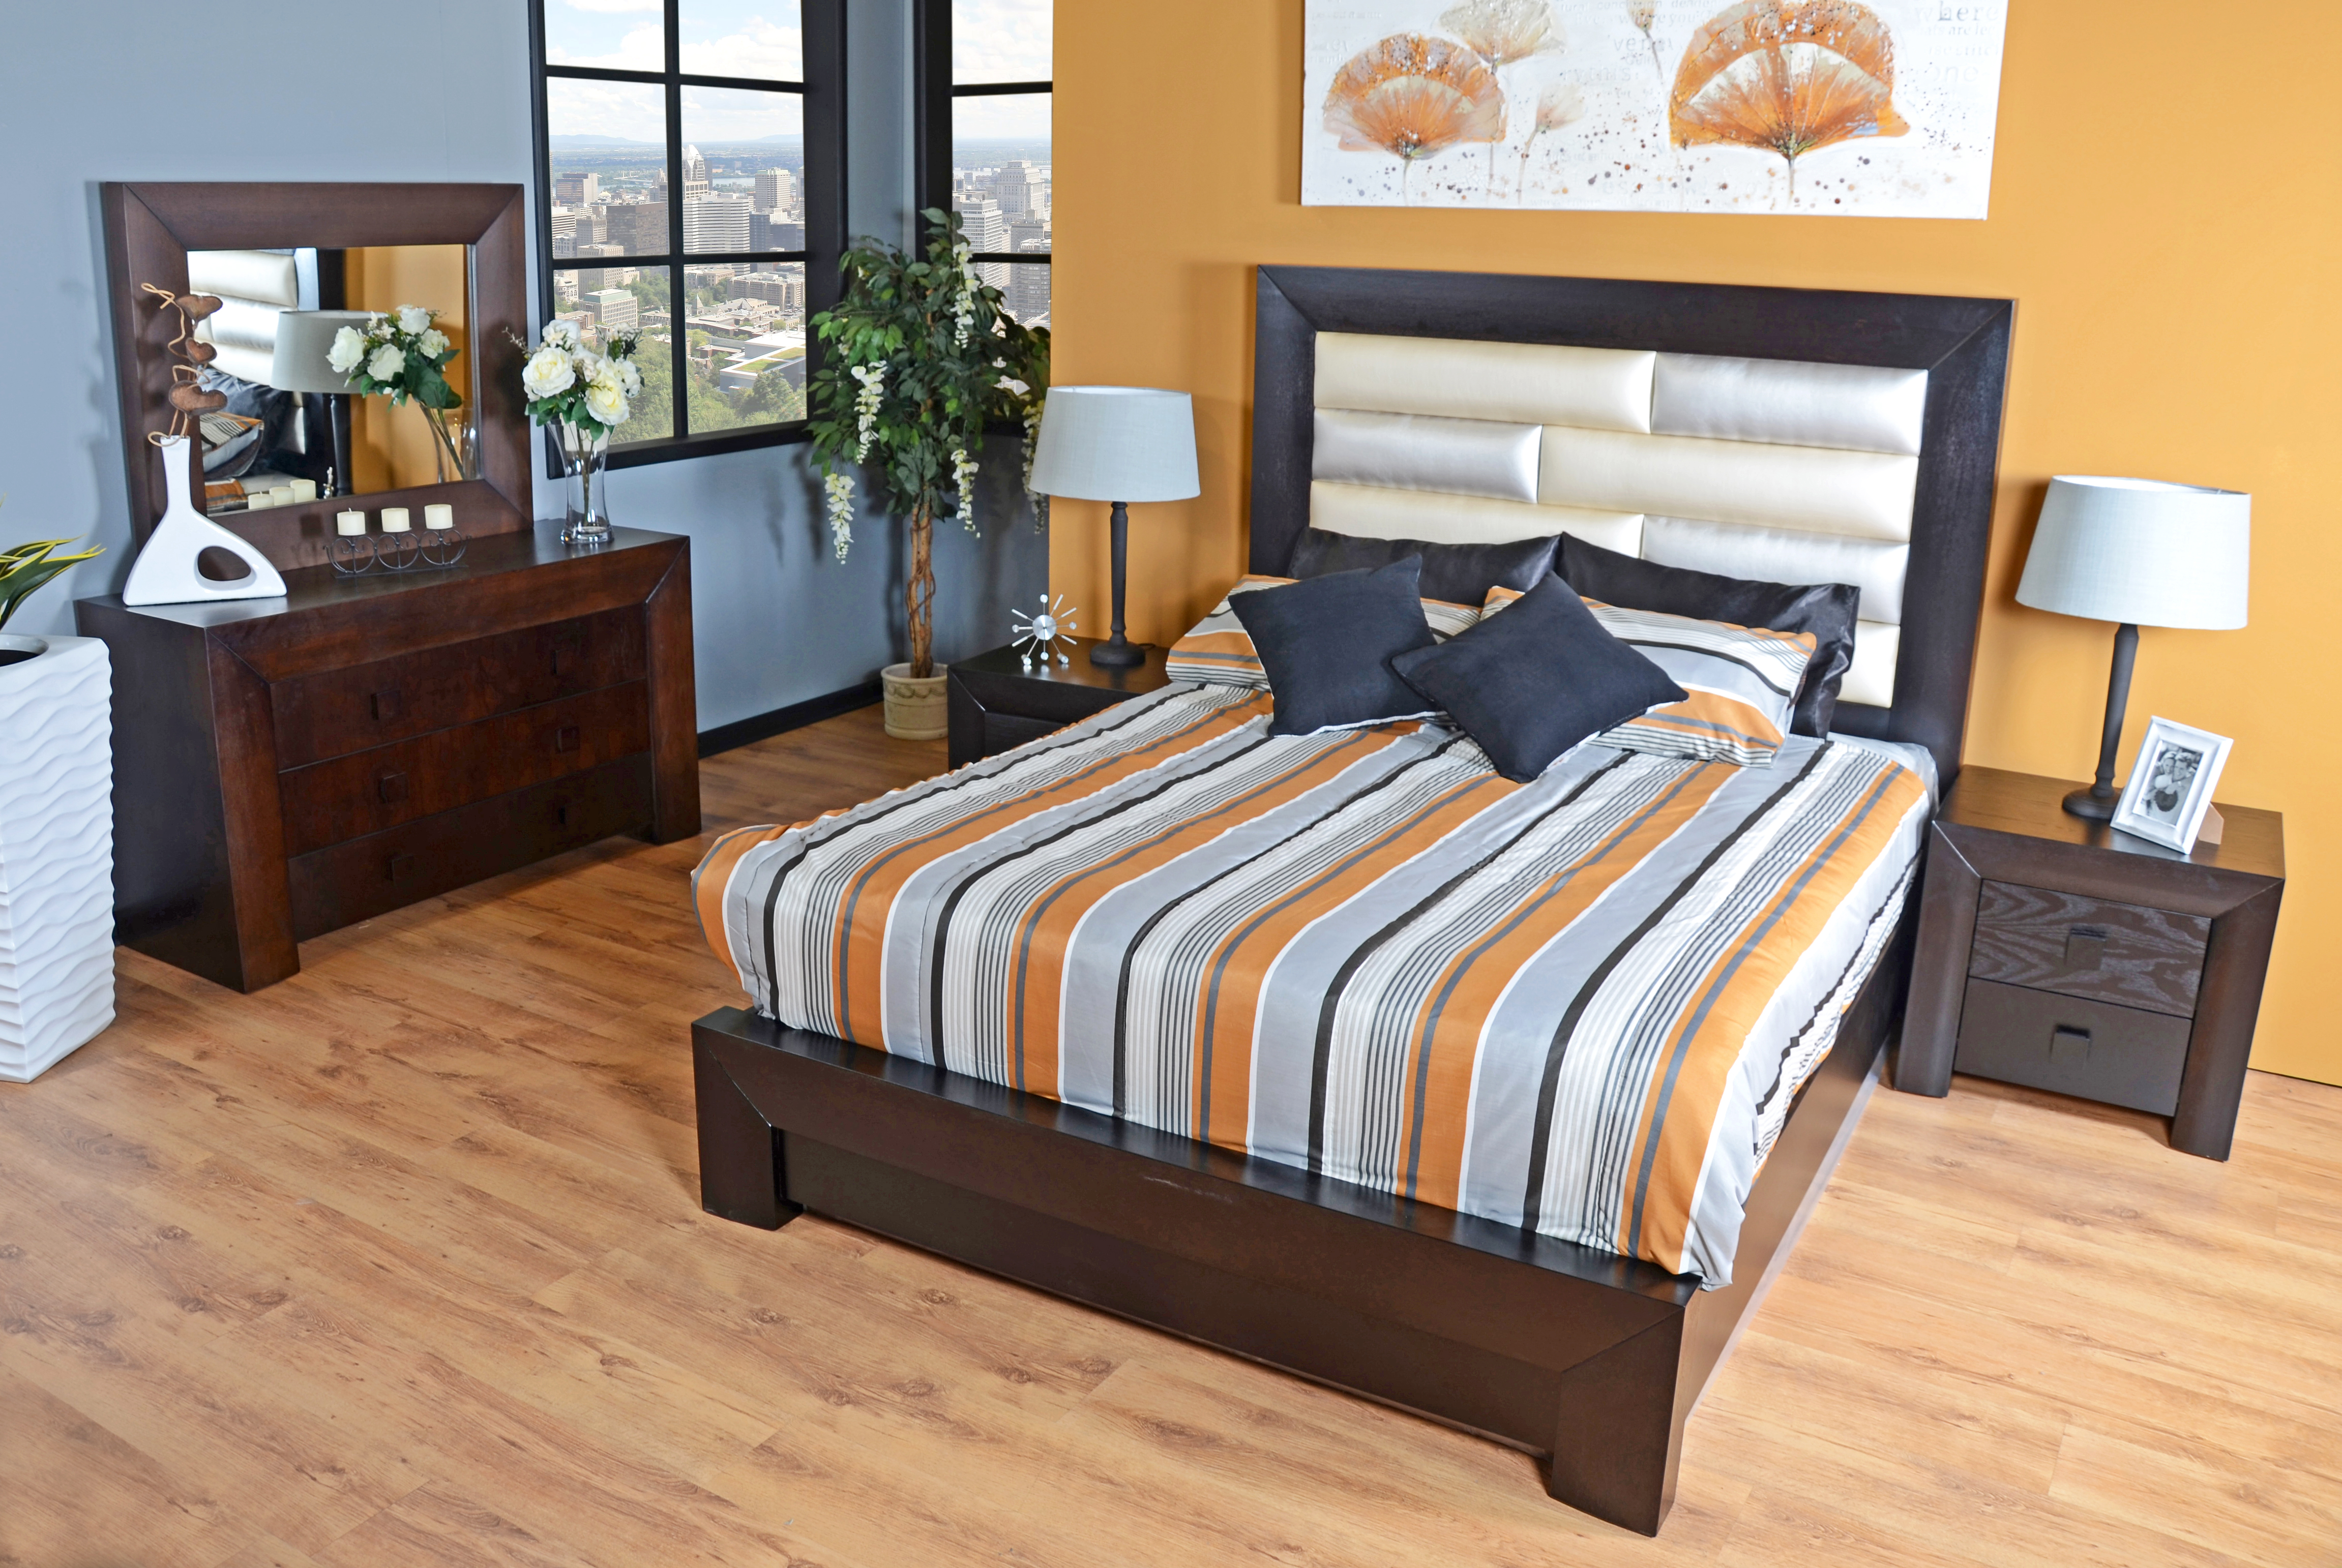 bedroom sets montery bedroom suite was listed for r16 11035 | montery bedroom suite